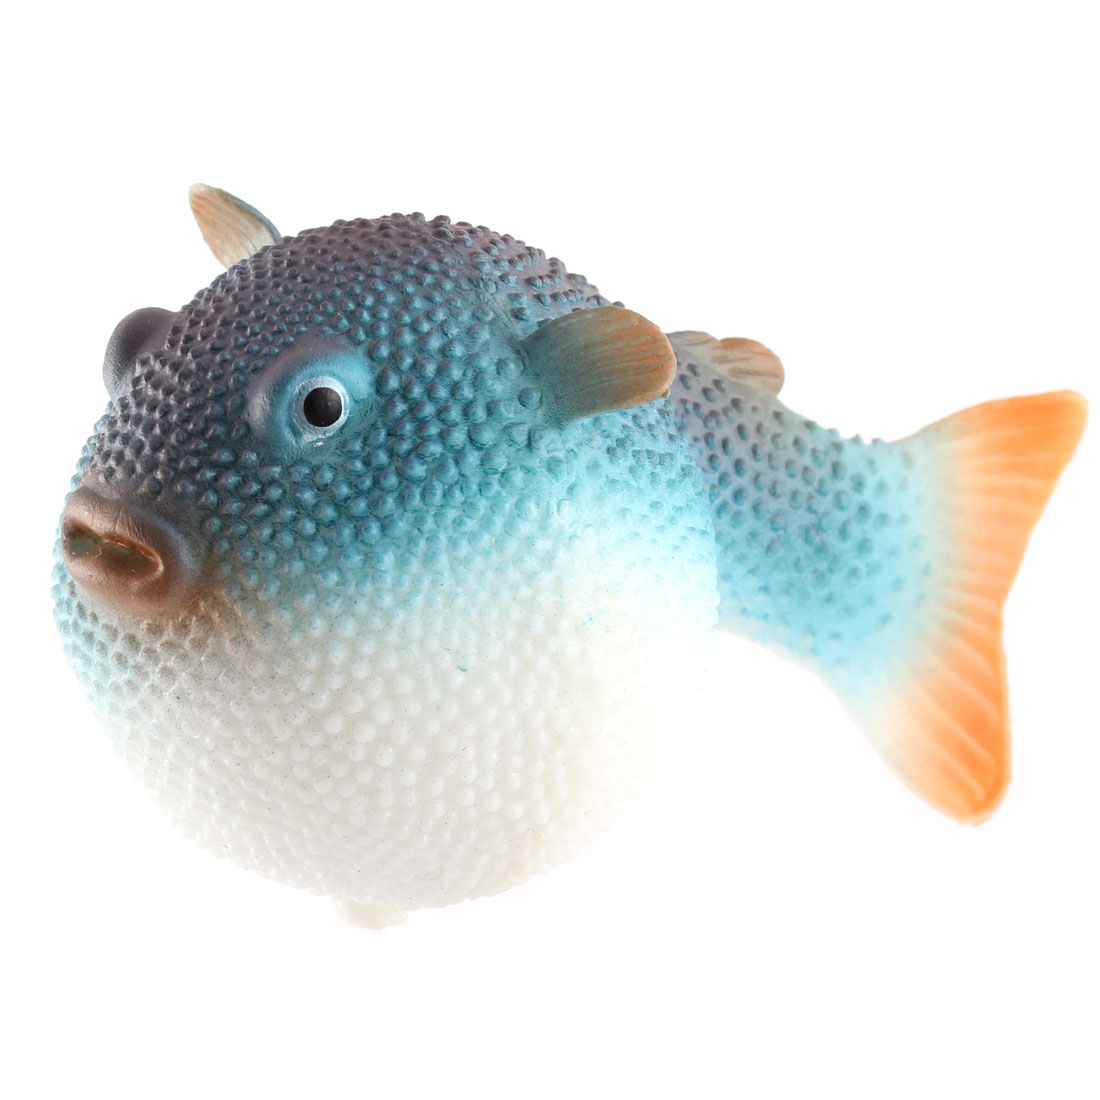 Aquarium Fish Tank Decoration Plastic Water Floating Emulational Blowfish Blue